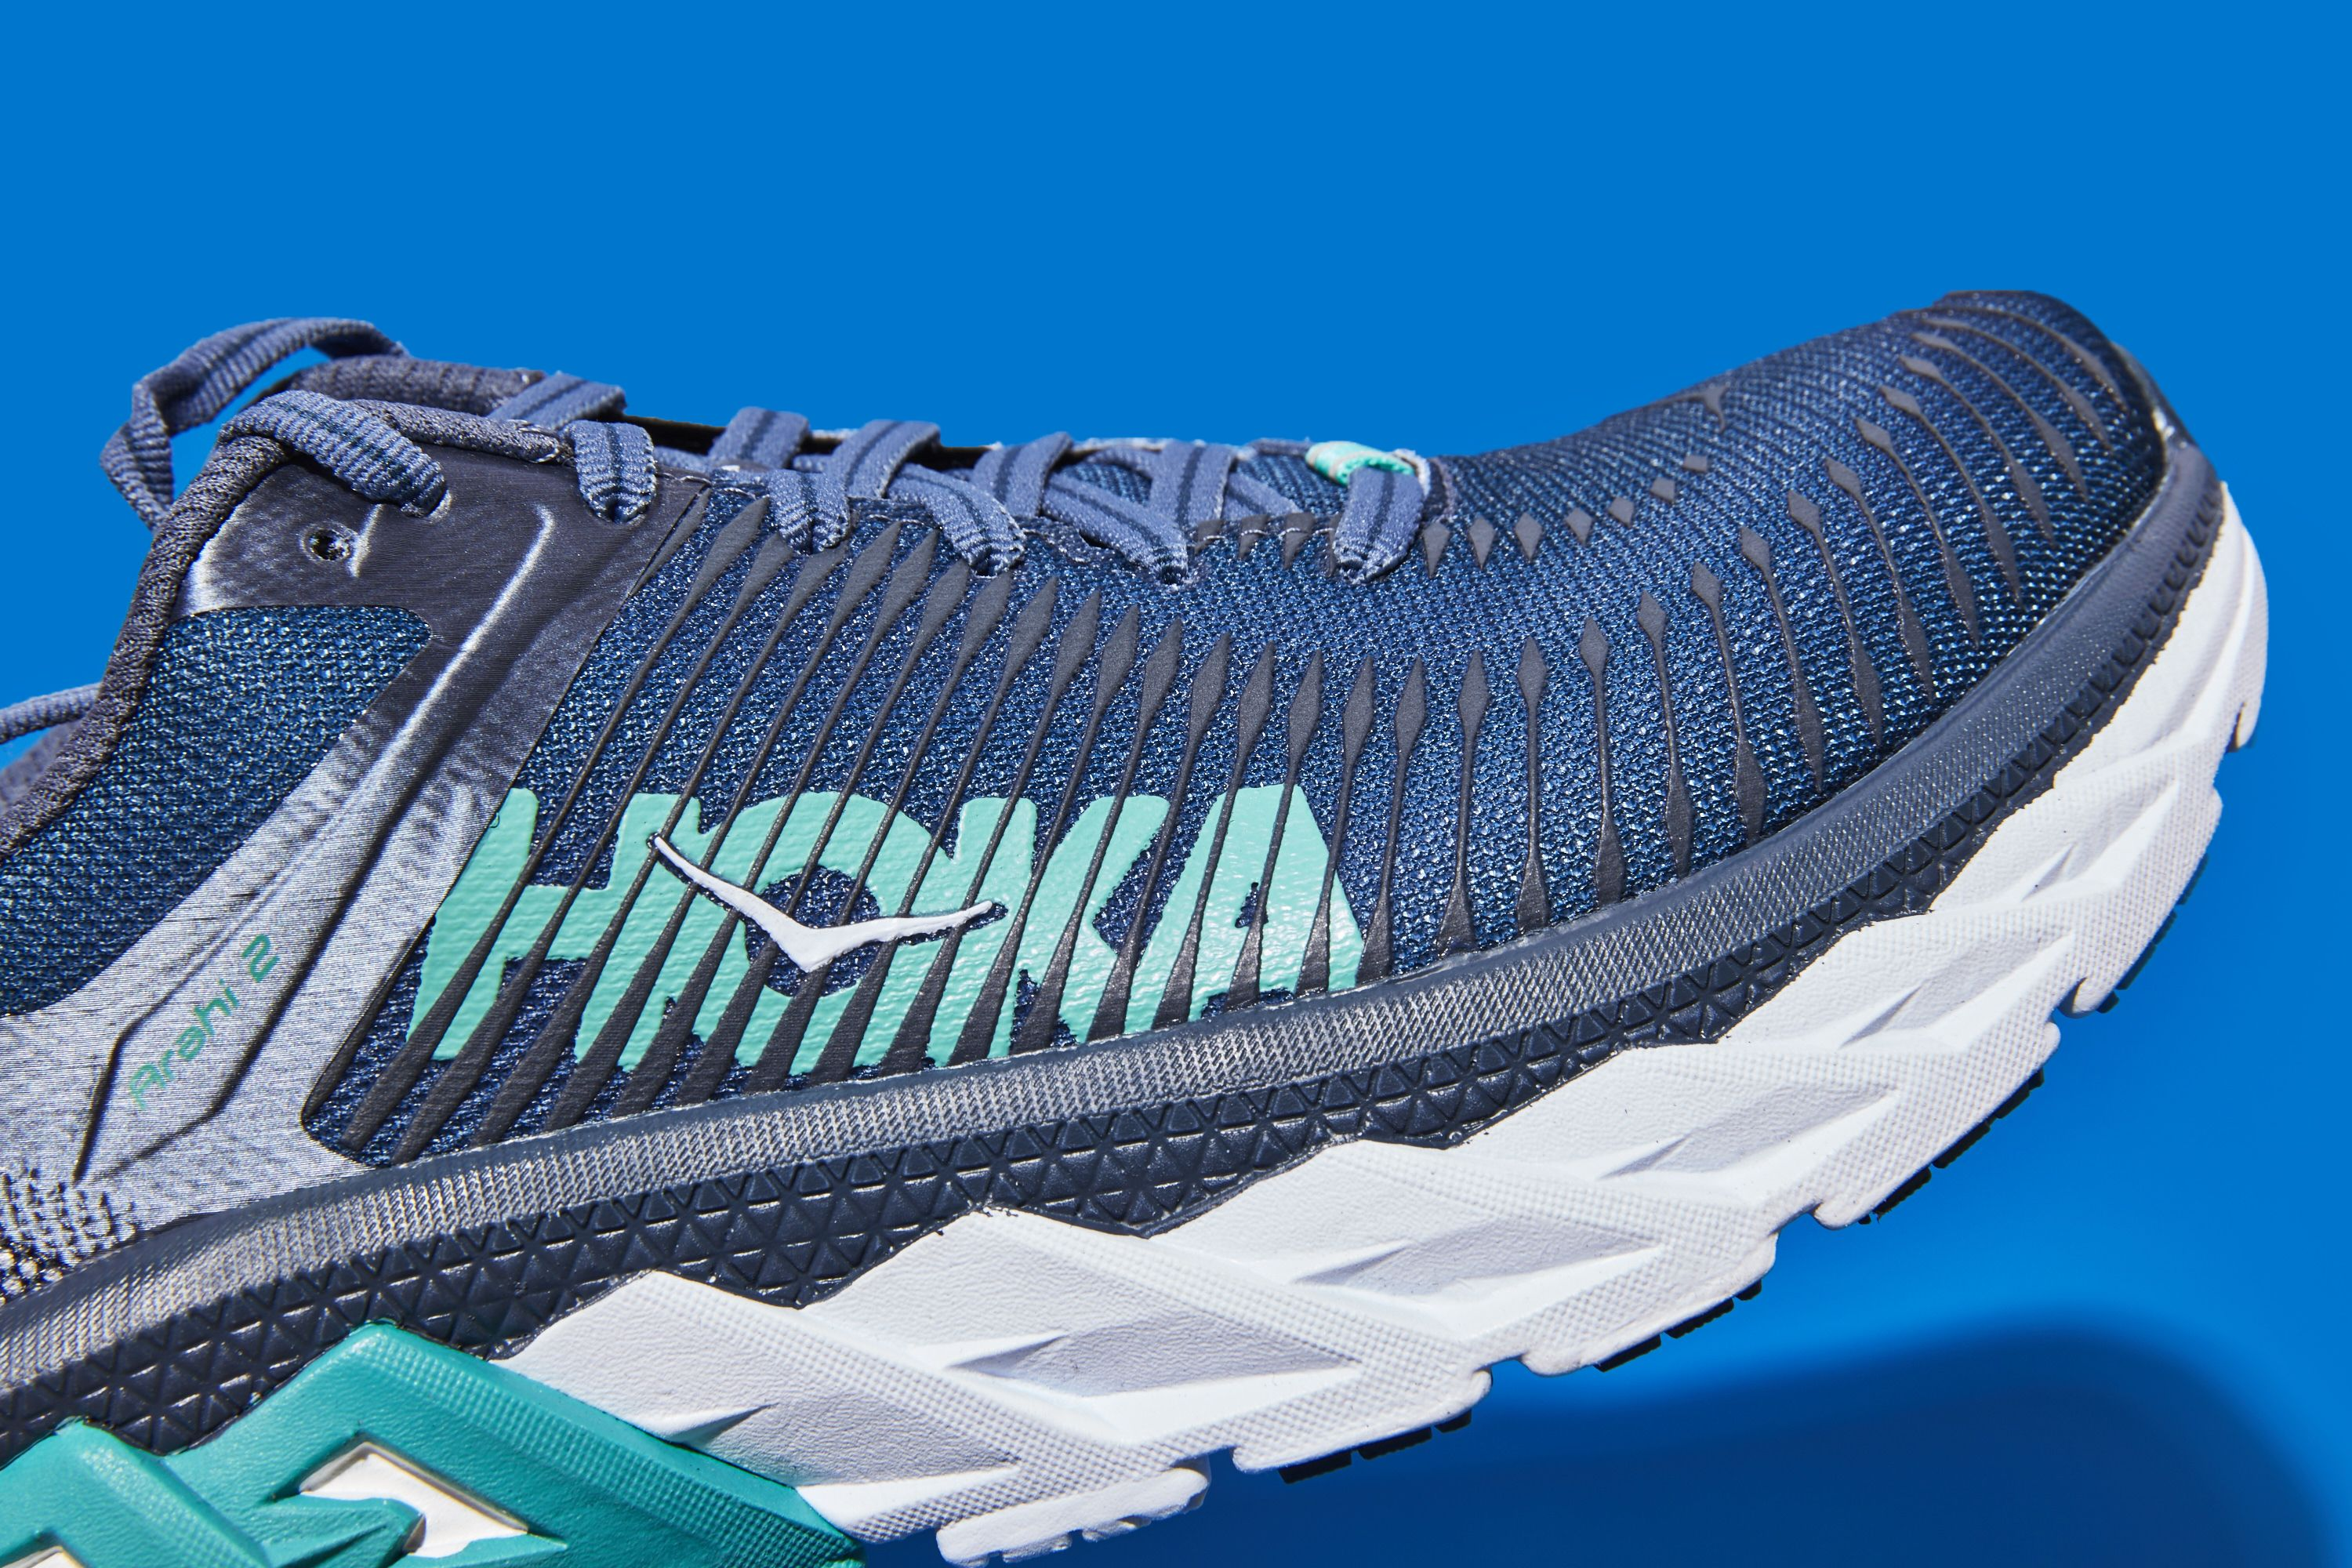 48d3602d56227 Hoka One One Arahi 2 Review - Road Running Shoes